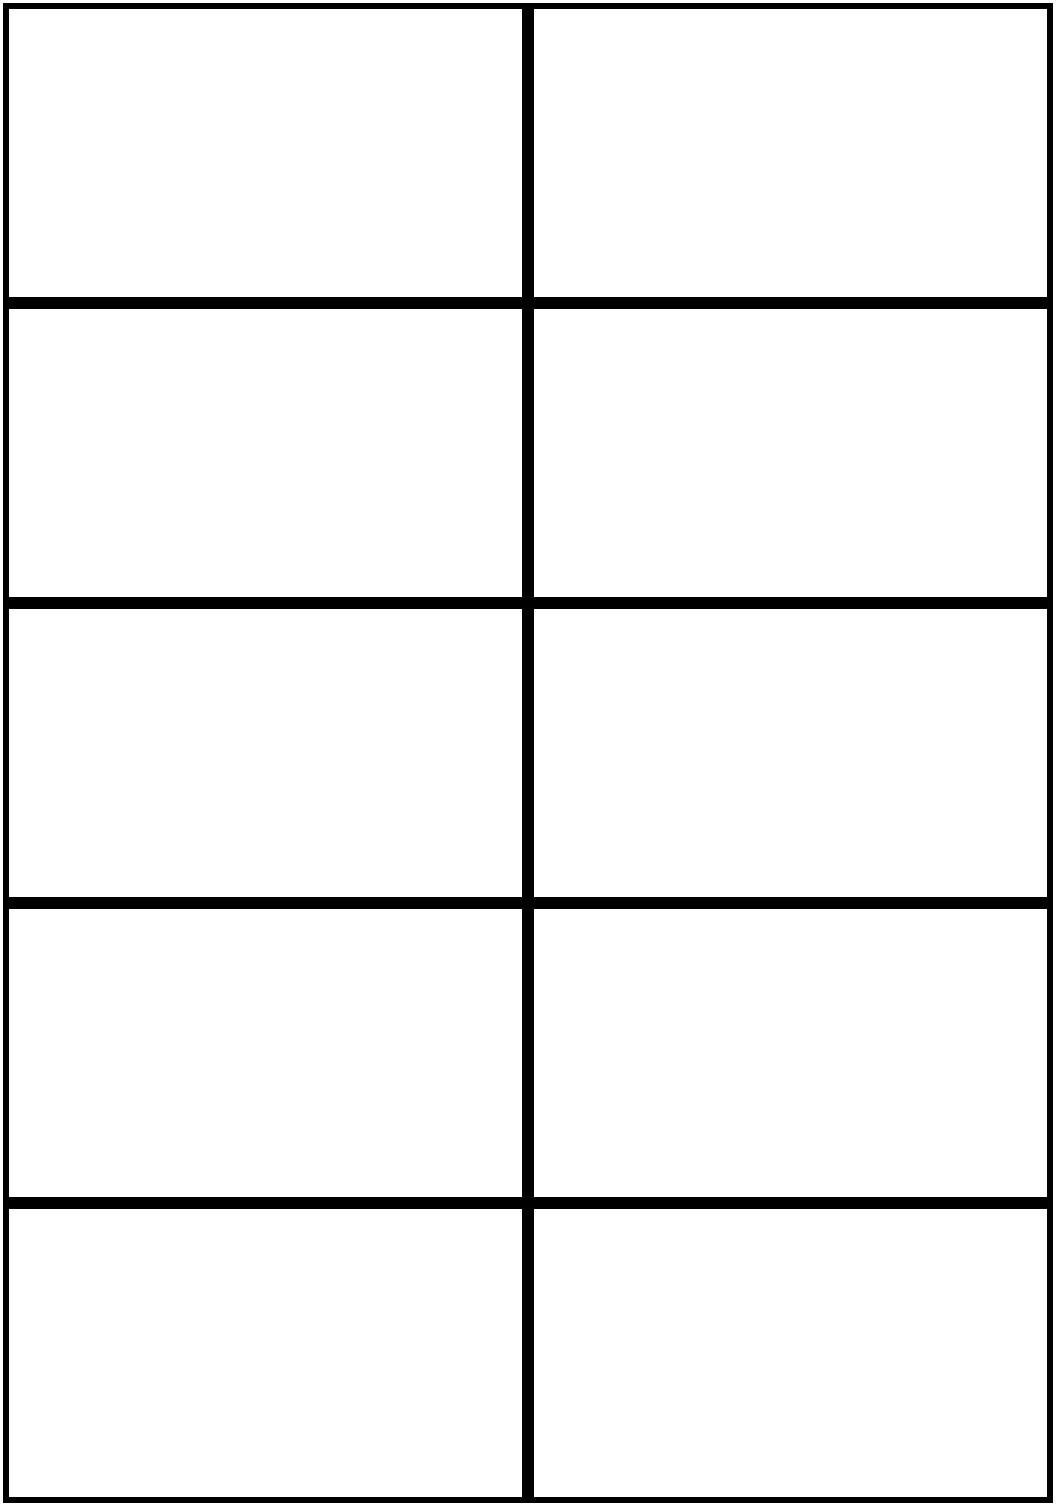 Image Result For Flashcards Template Word  Worksheets  Free With Free Printable Blank Flash Cards Template